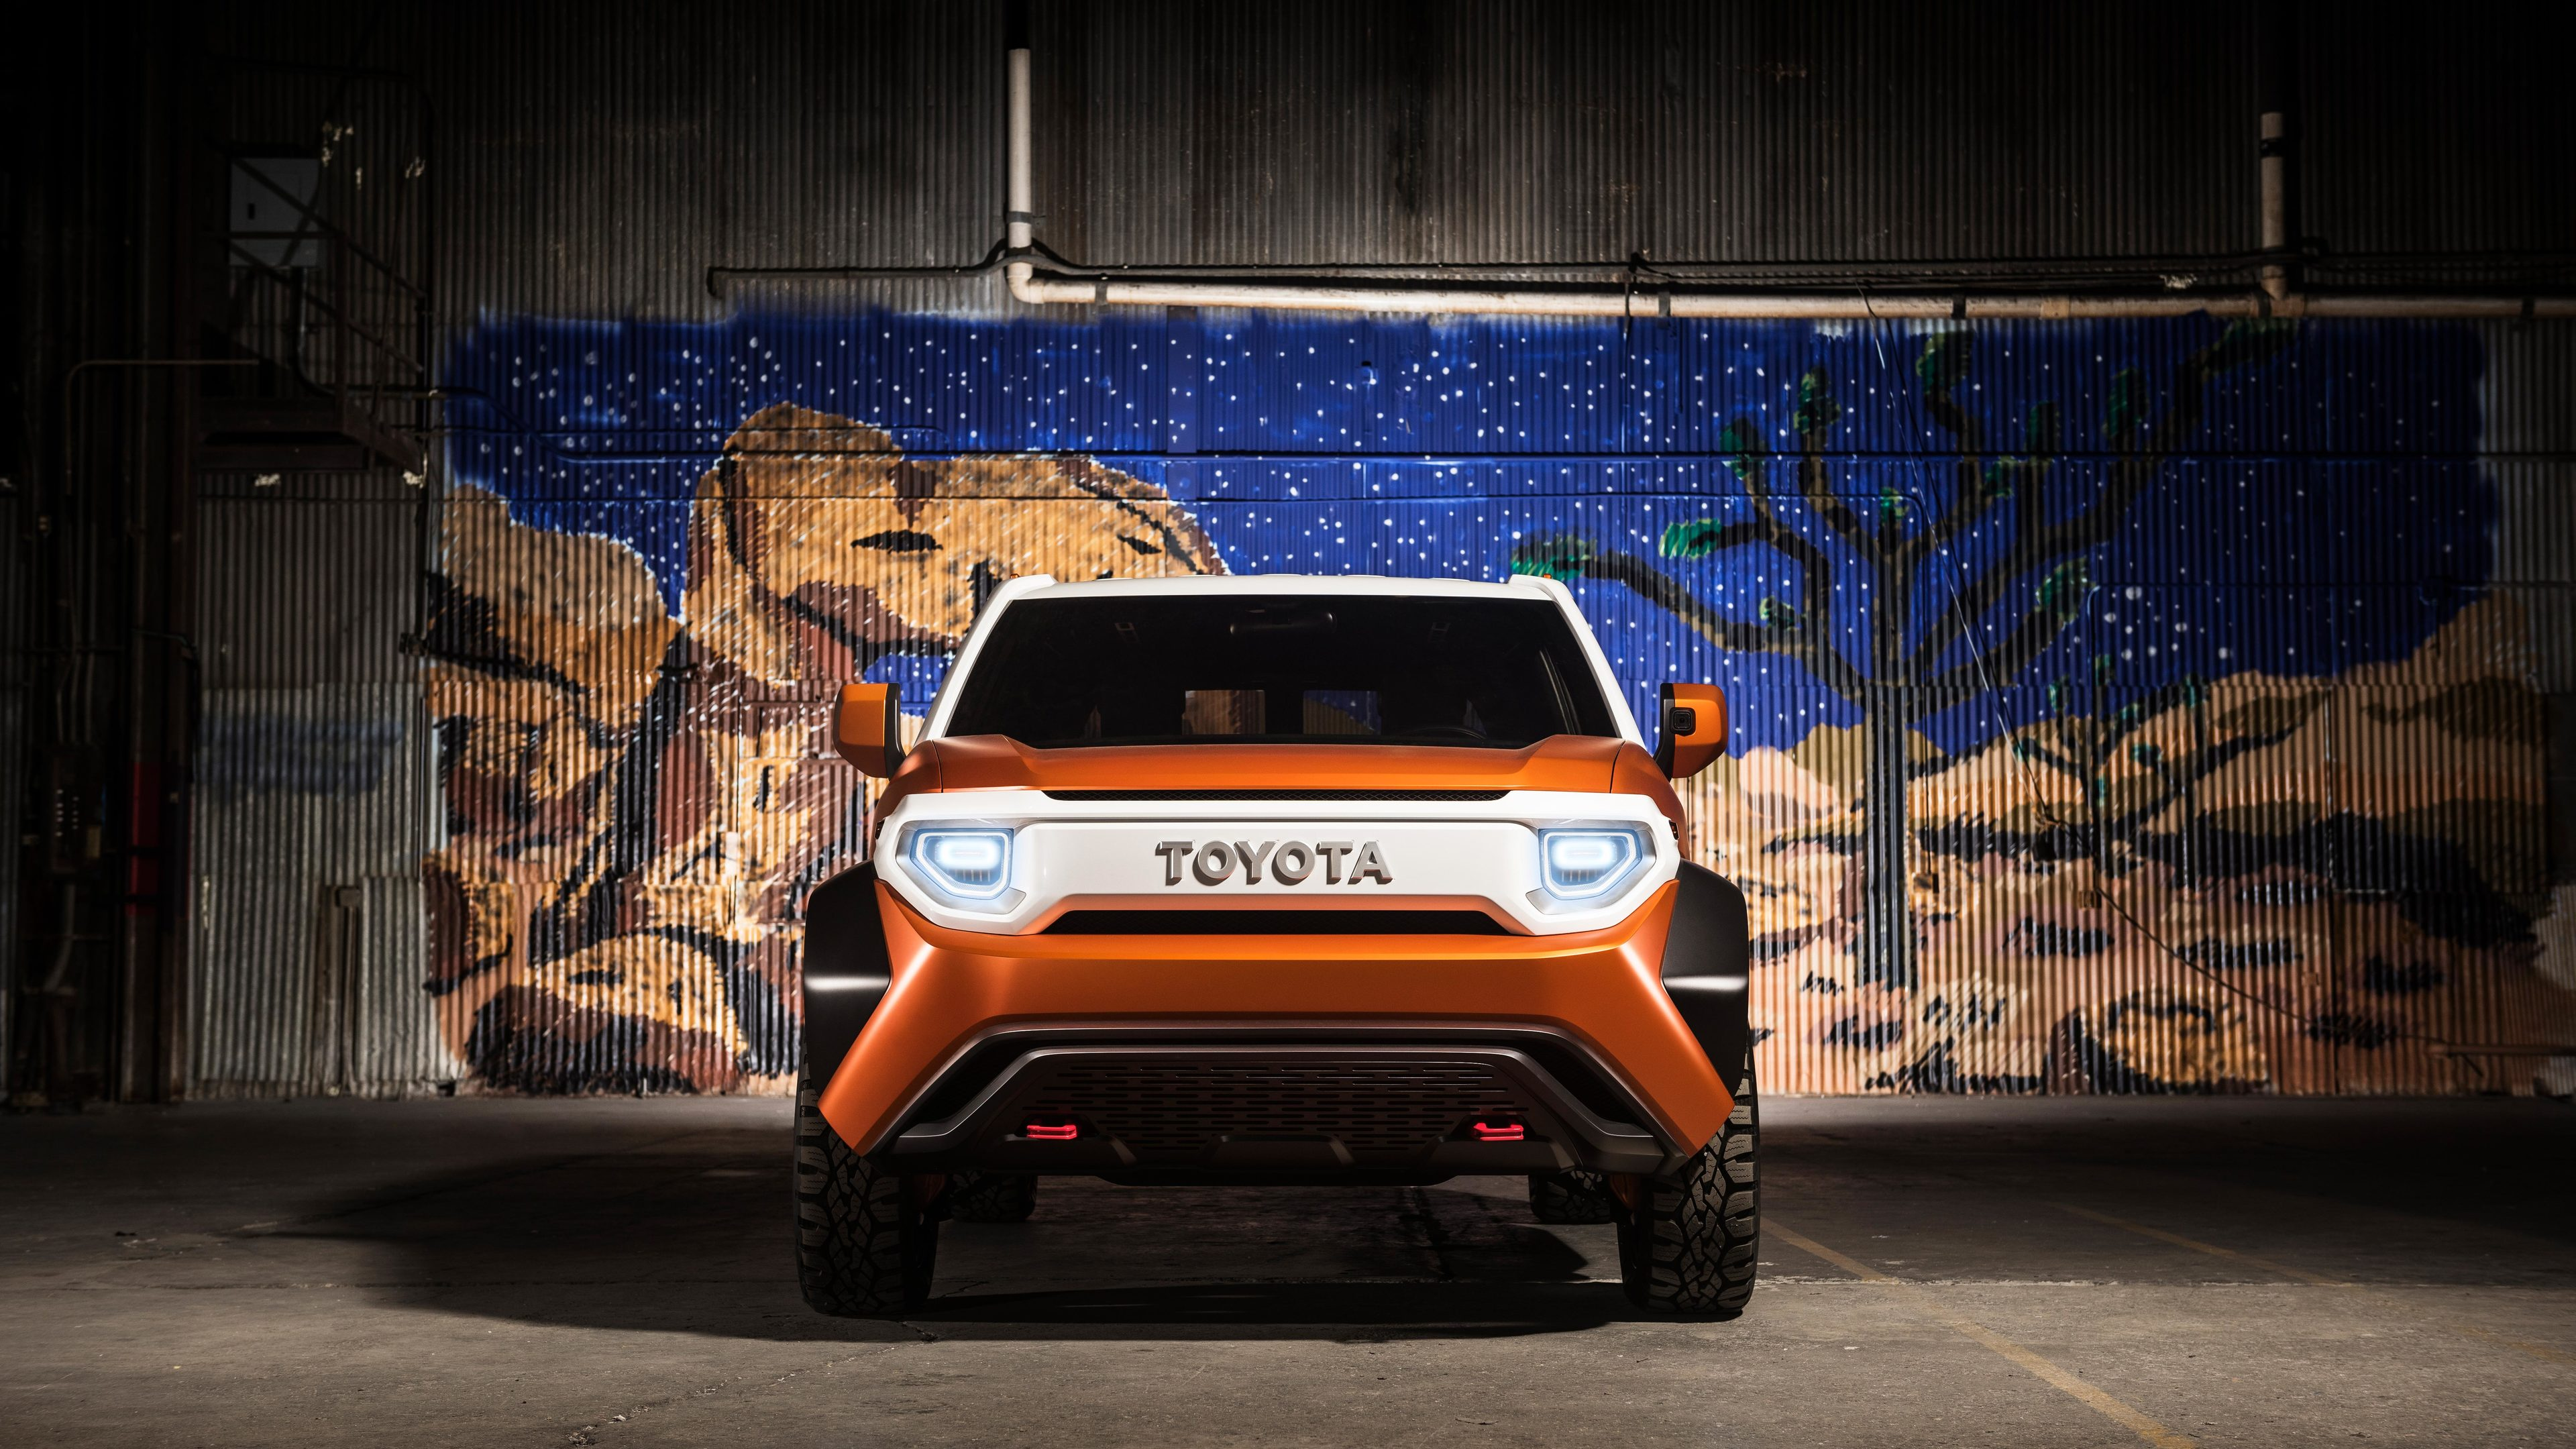 2017 toyota ft 4x concept 1539105156 - 2017 Toyota FT 4X Concept - toyota ft 4x wallpapers, hd-wallpapers, concept cars wallpapers, 4k-wallpapers, 2017 cars wallpapers